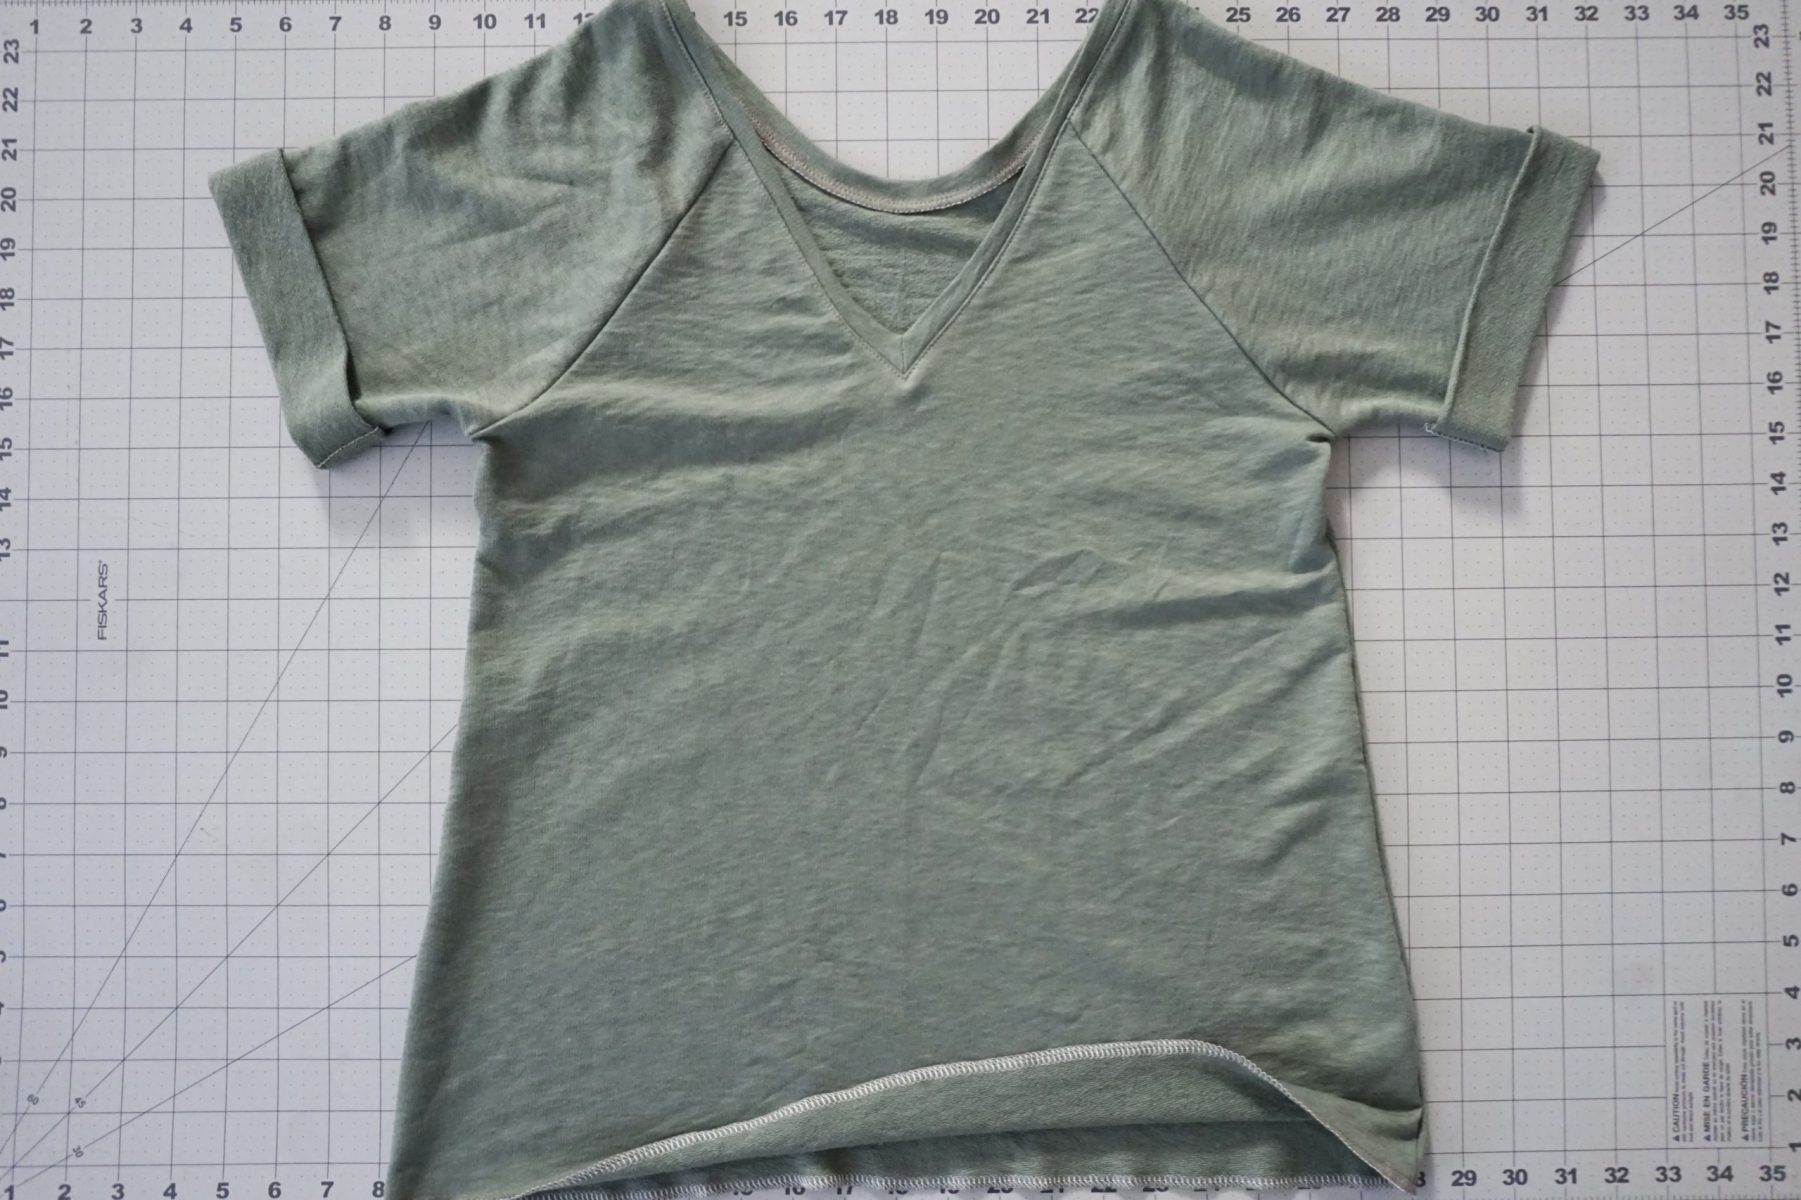 Next, you'll sew up the top, following the pattern directions.